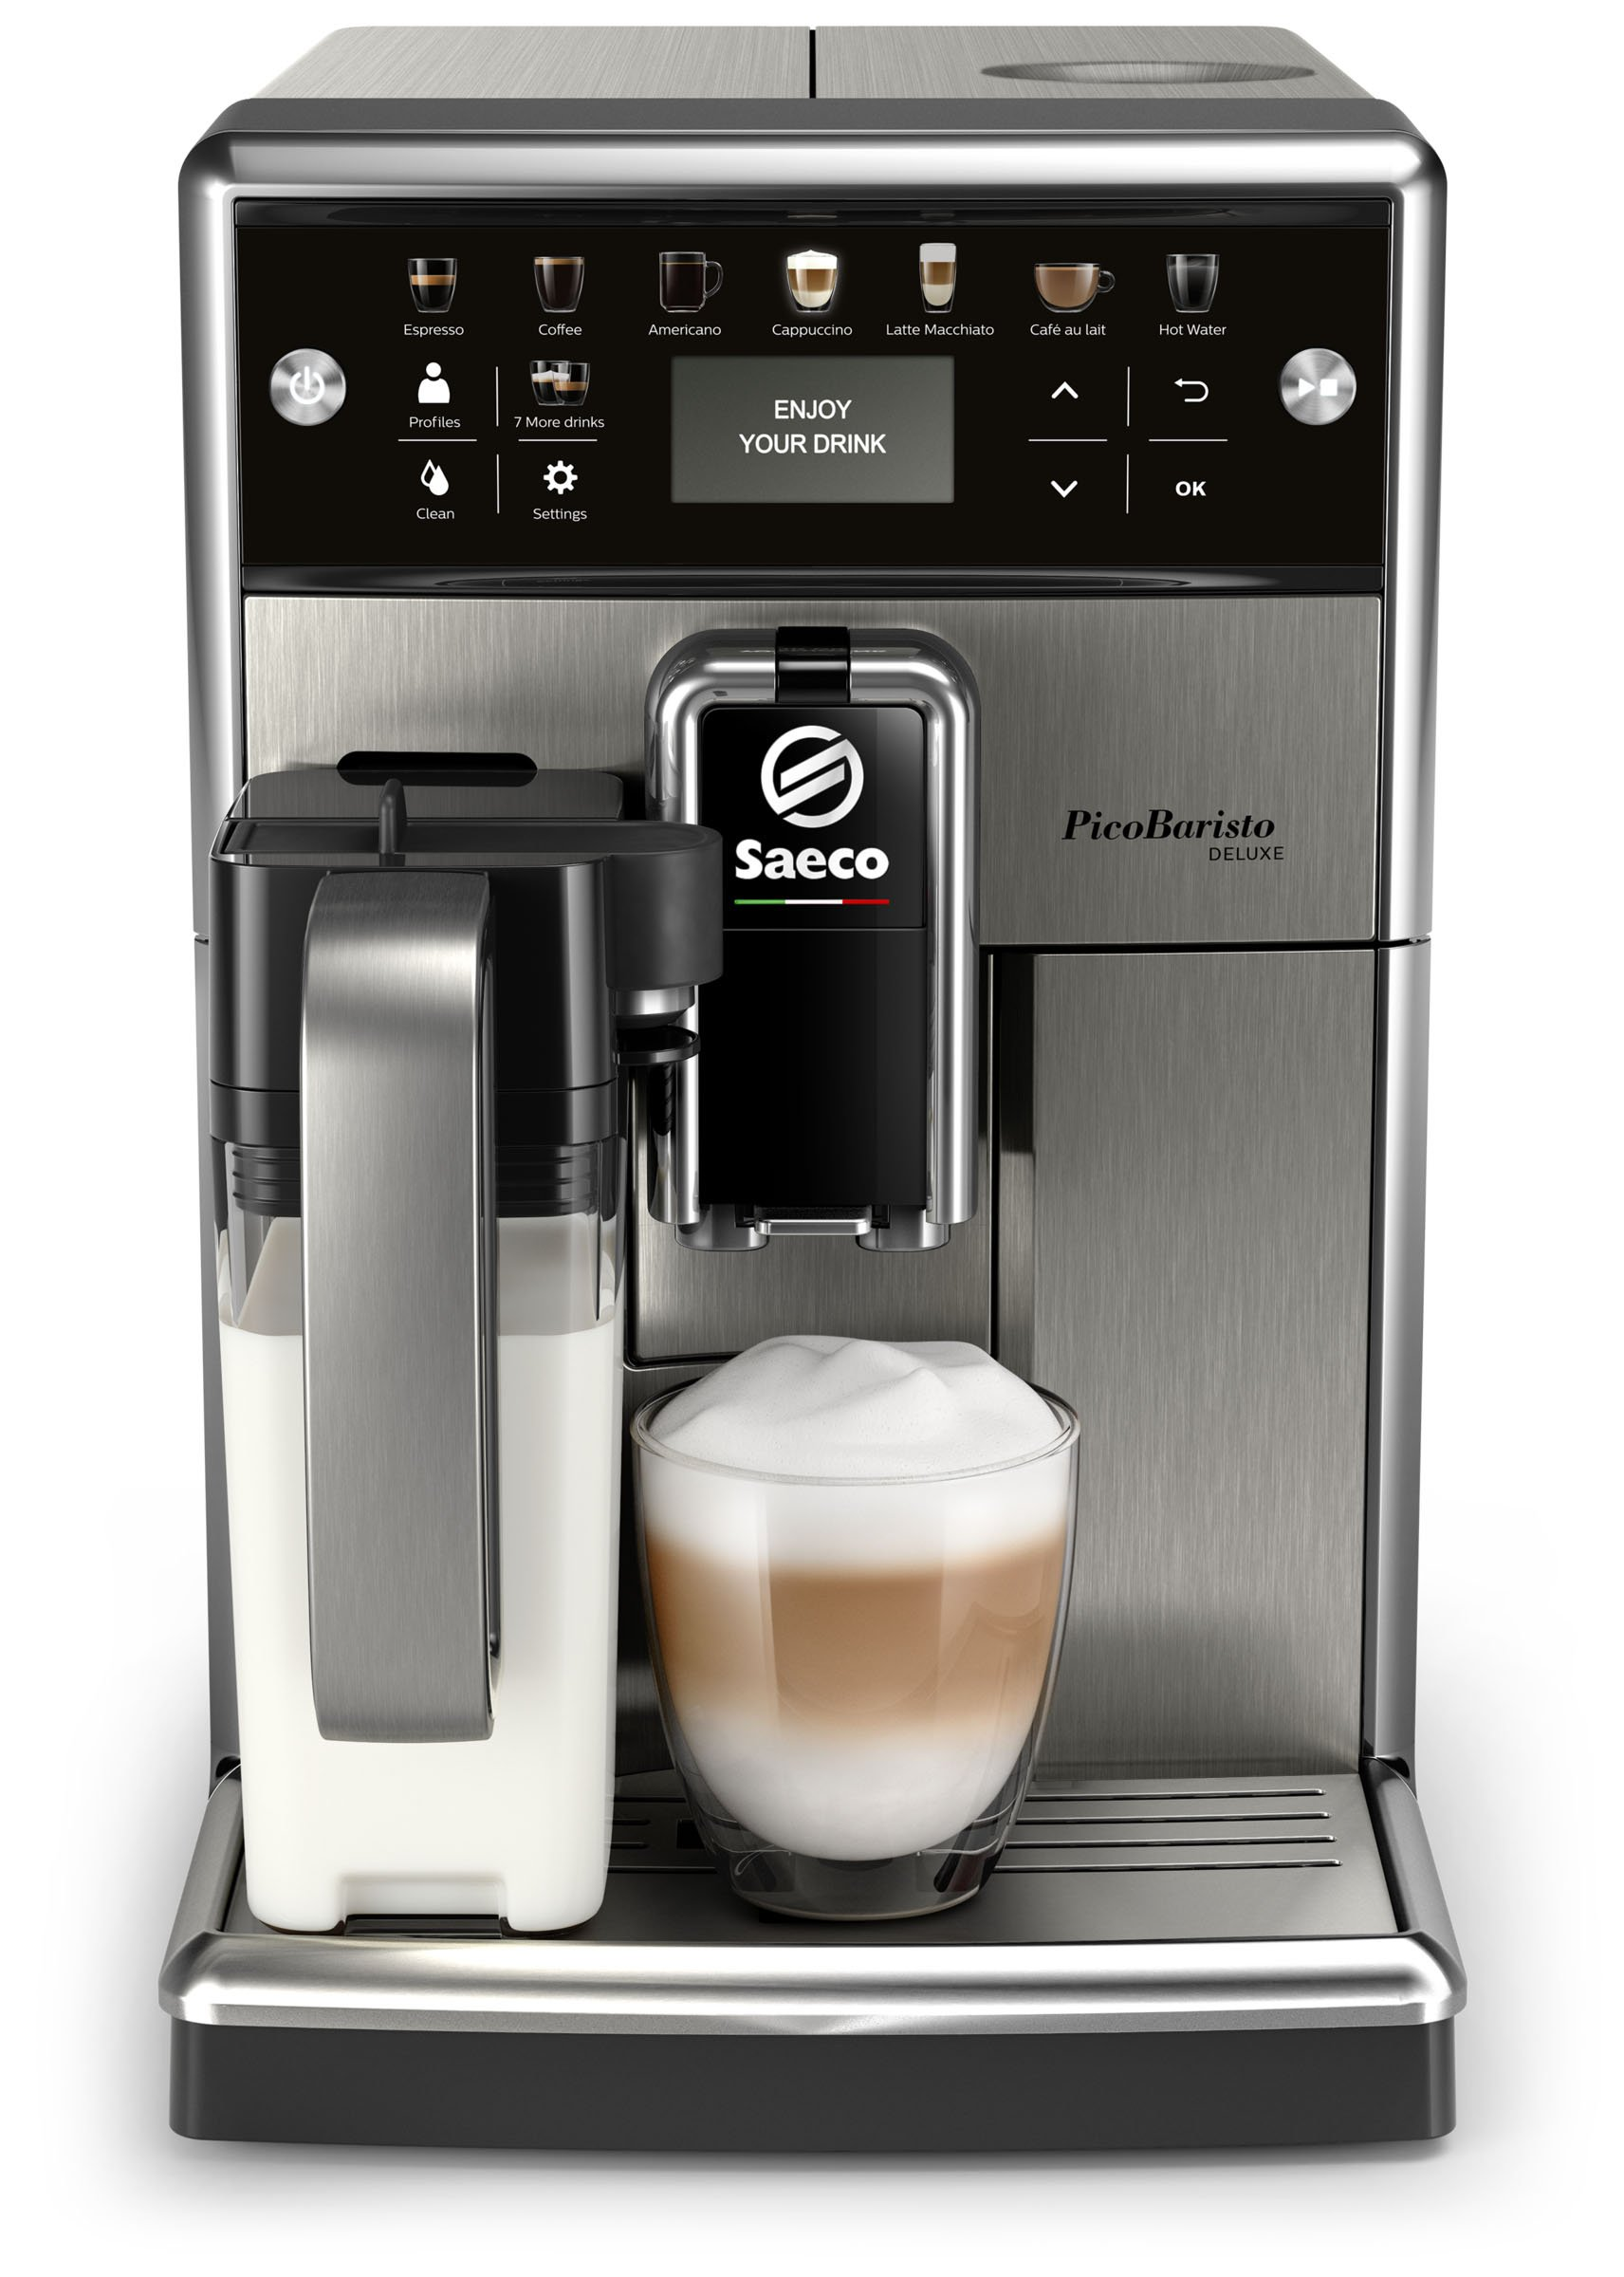 Saeco-PicoBaristo-Deluxe-Kaffeevollautomat-LED-Display-integriertes-Milchsystem